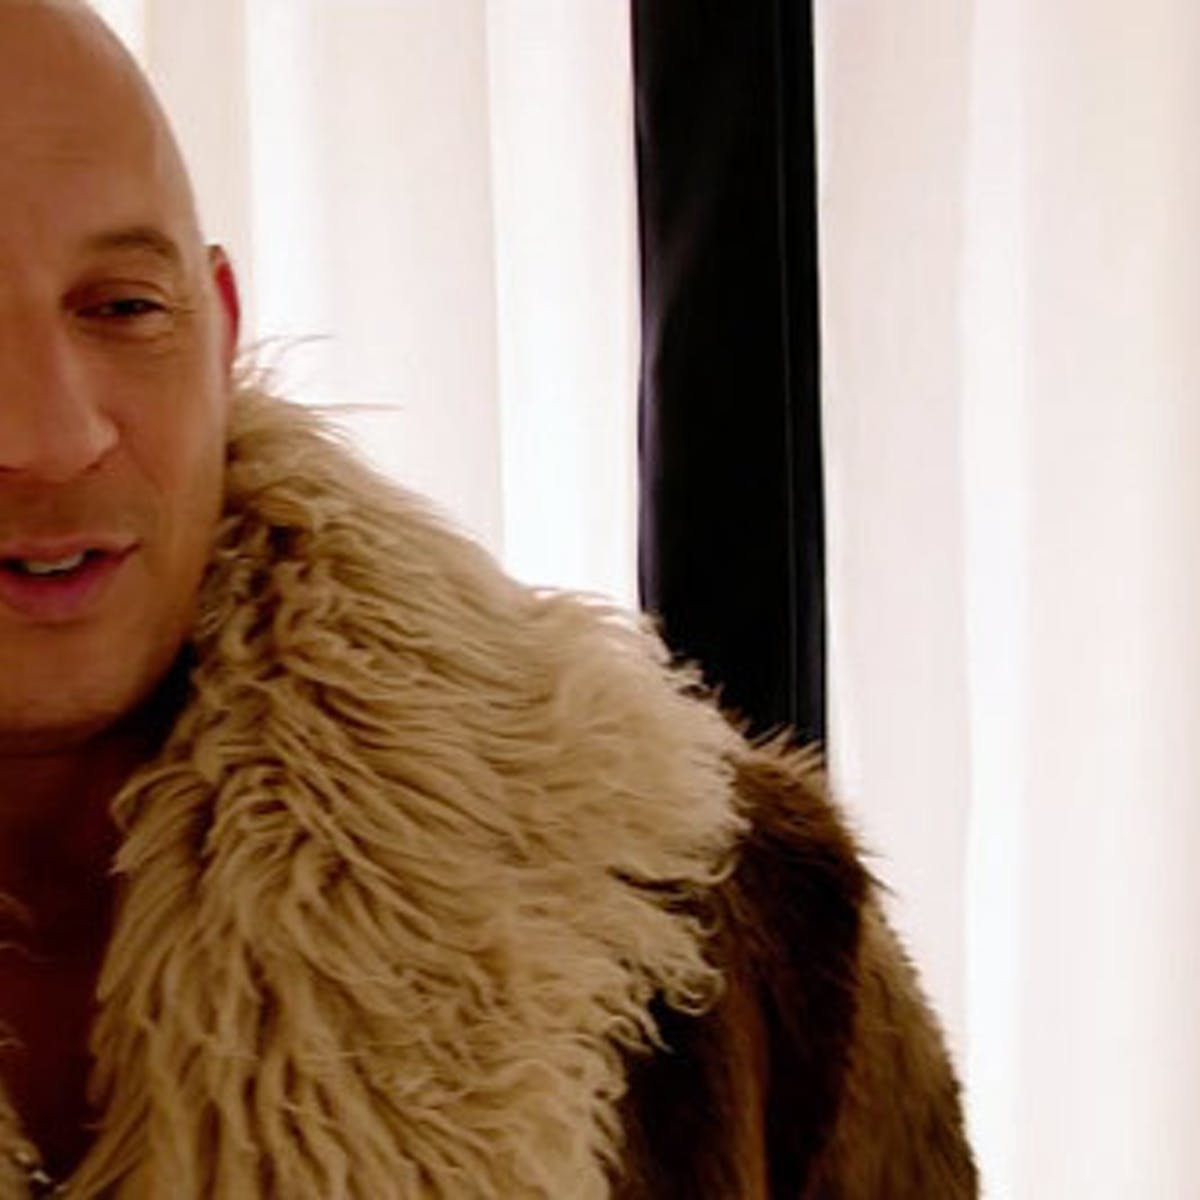 b4dcf884 Why Vin Diesel's 'xXx: Return of Xander Cage' Coat Was Remade in Canada |  Inverse